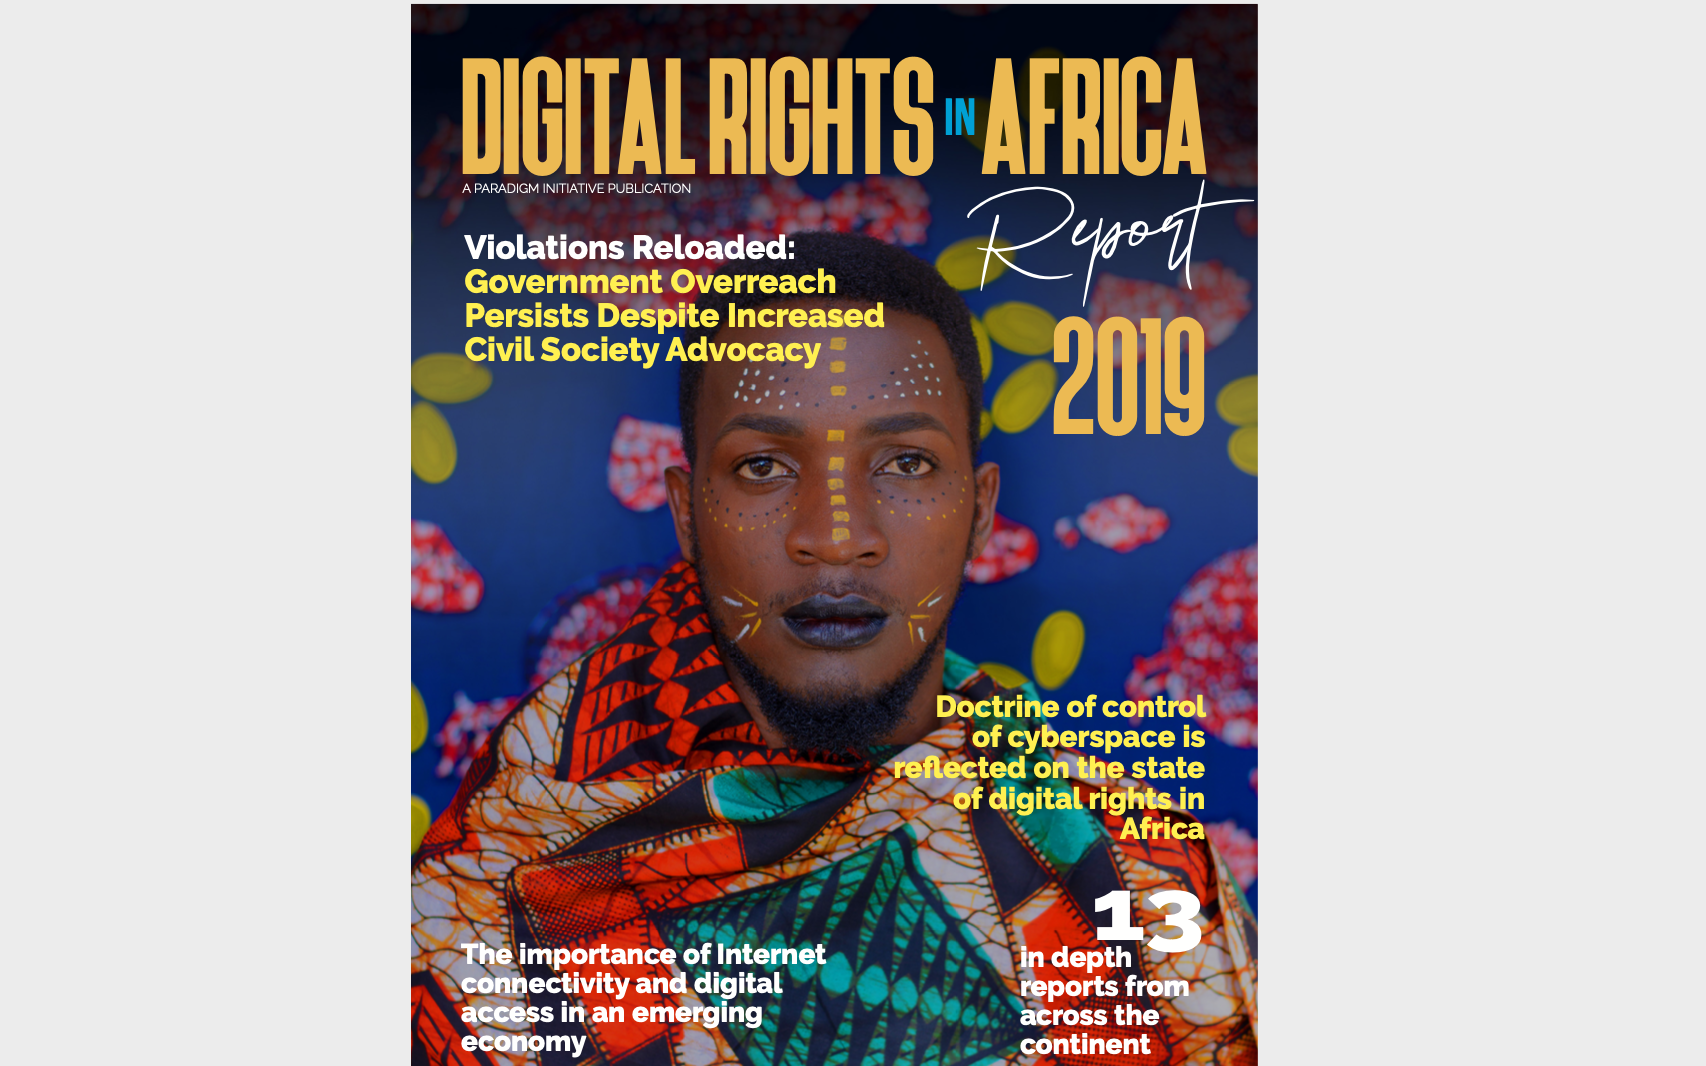 Paradigm Initiative Releases Digital Rights in Africa Report 2019